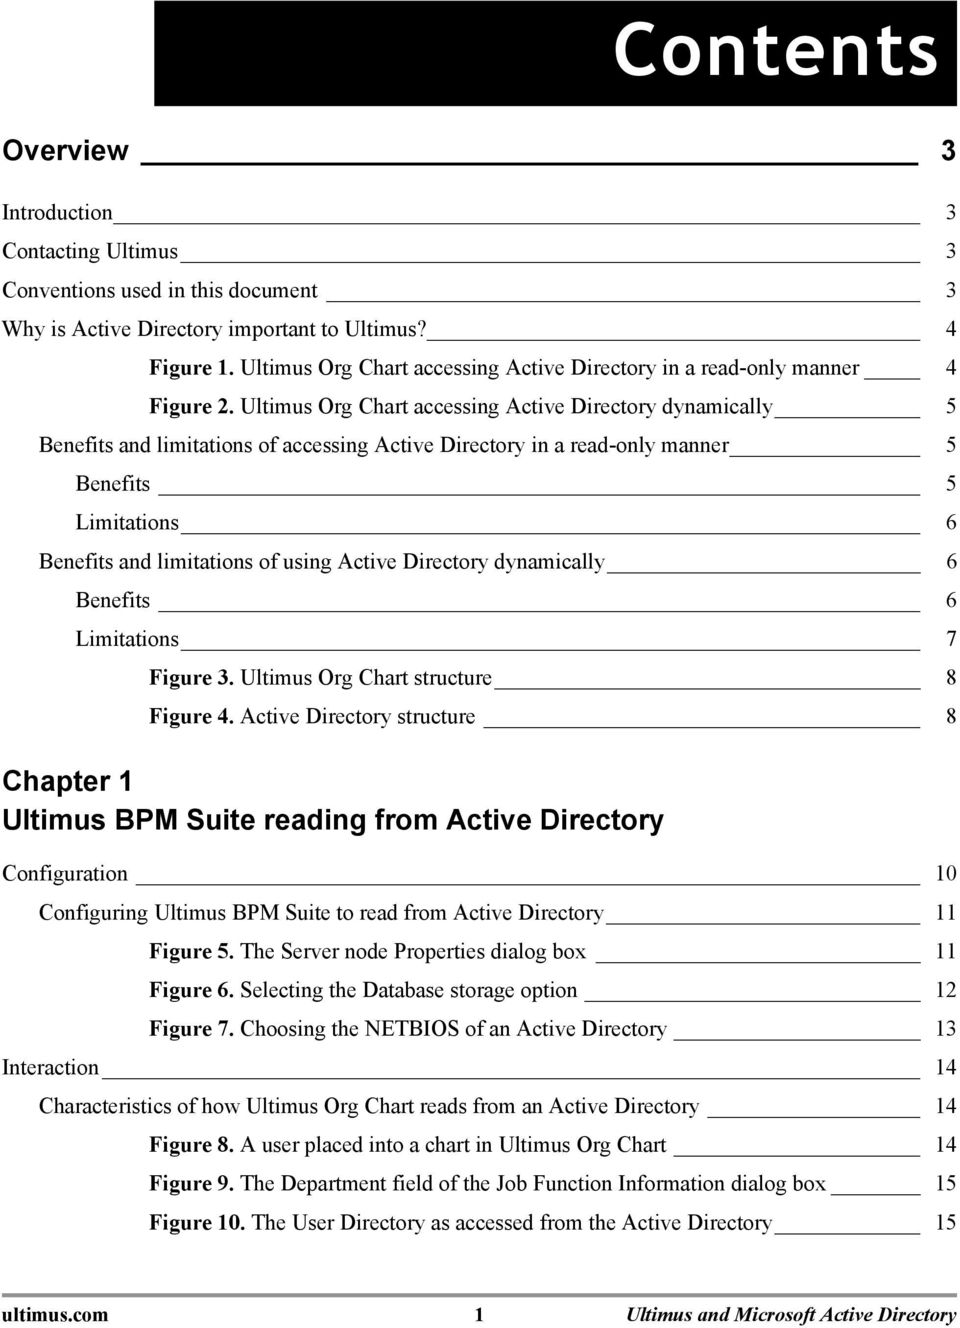 Ultimus Org Chart accessing Active Directory dynamically 5 Benefits and limitations of accessing Active Directory in a read-only manner 5 Benefits 5 Limitations 6 Benefits and limitations of using